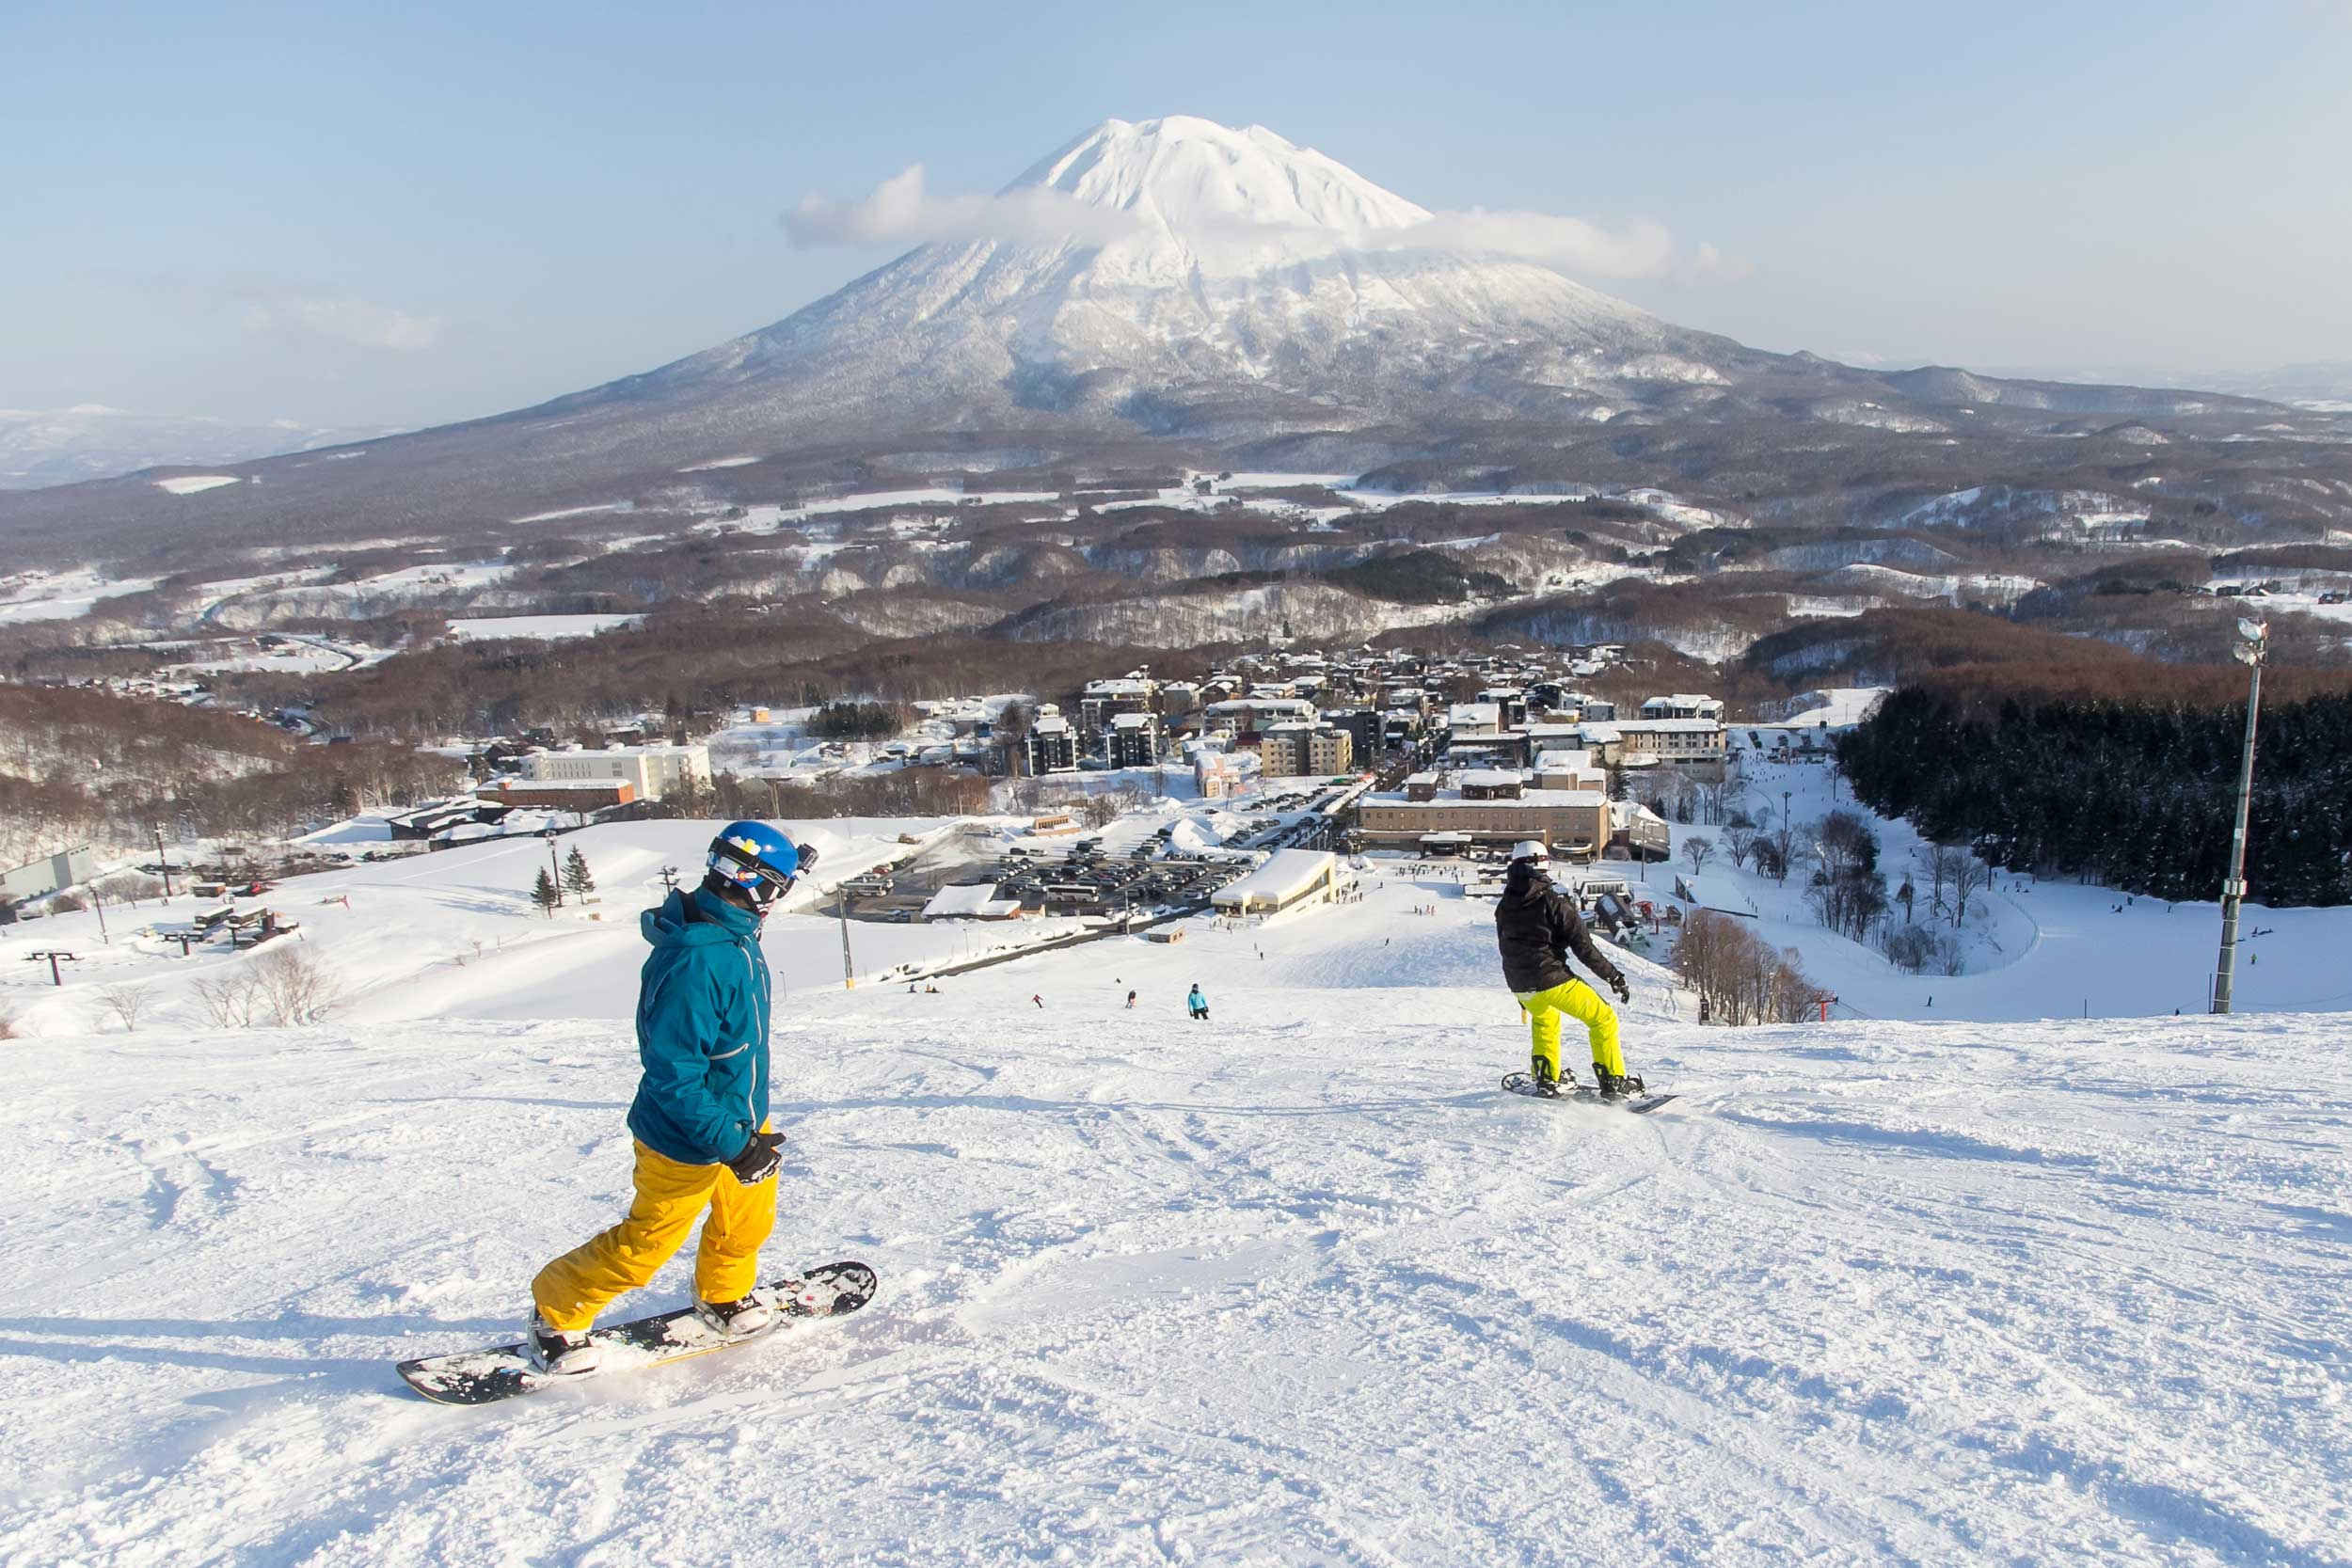 Snowboarders on a snowy slope, a ski resortat the bottom and a conical, snow-capped mountain in the distance, Japan